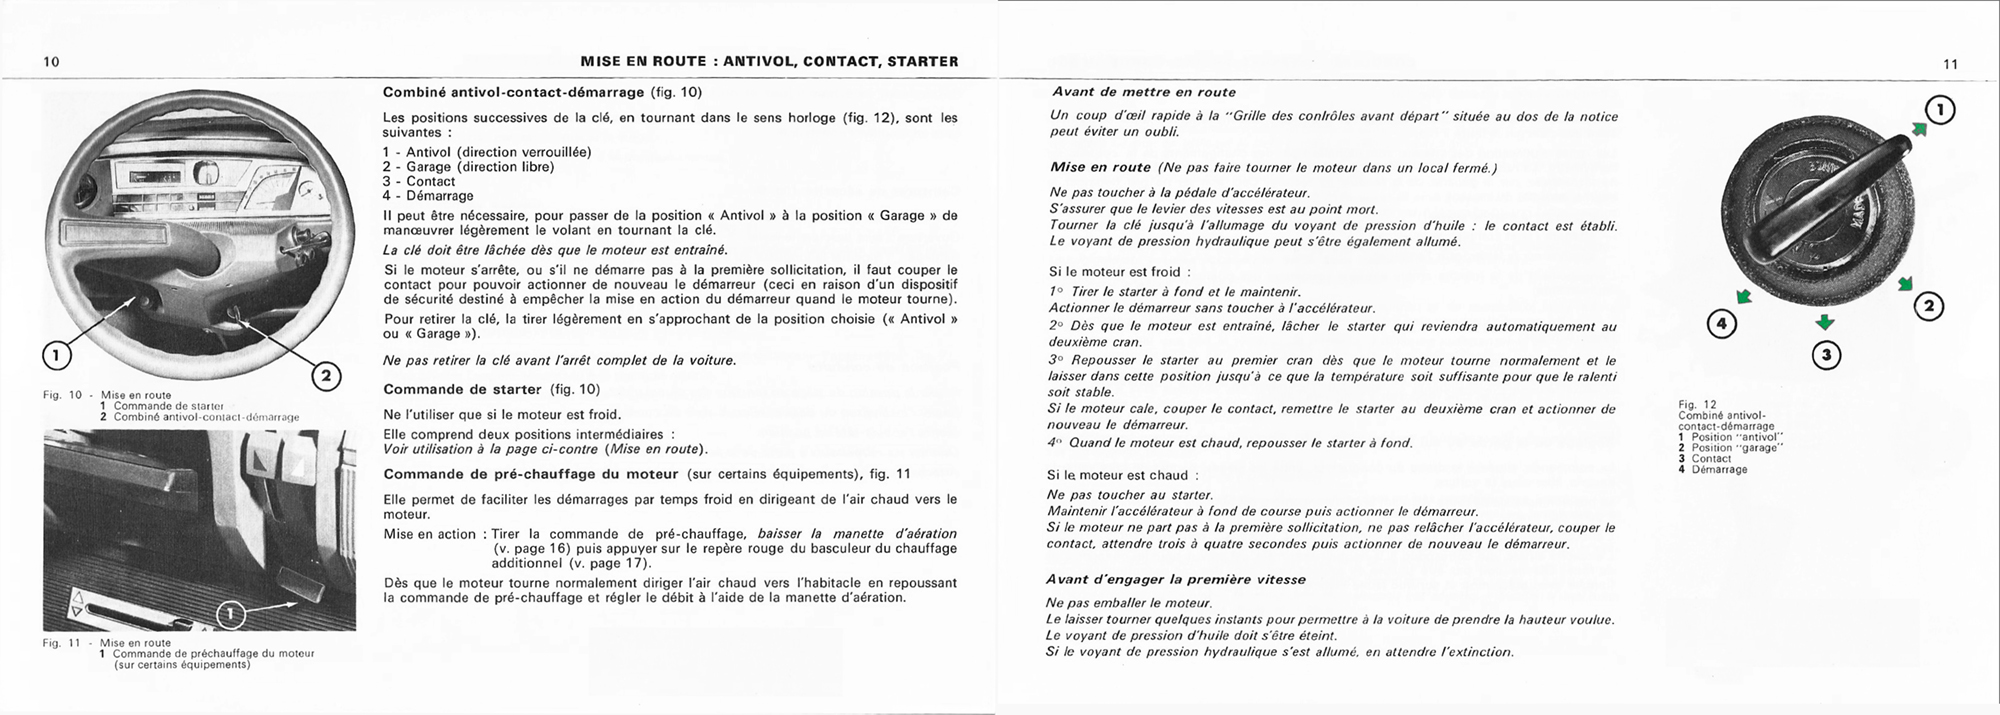 1971 Citroën GS Notice d'emploi (owner's manual) #1